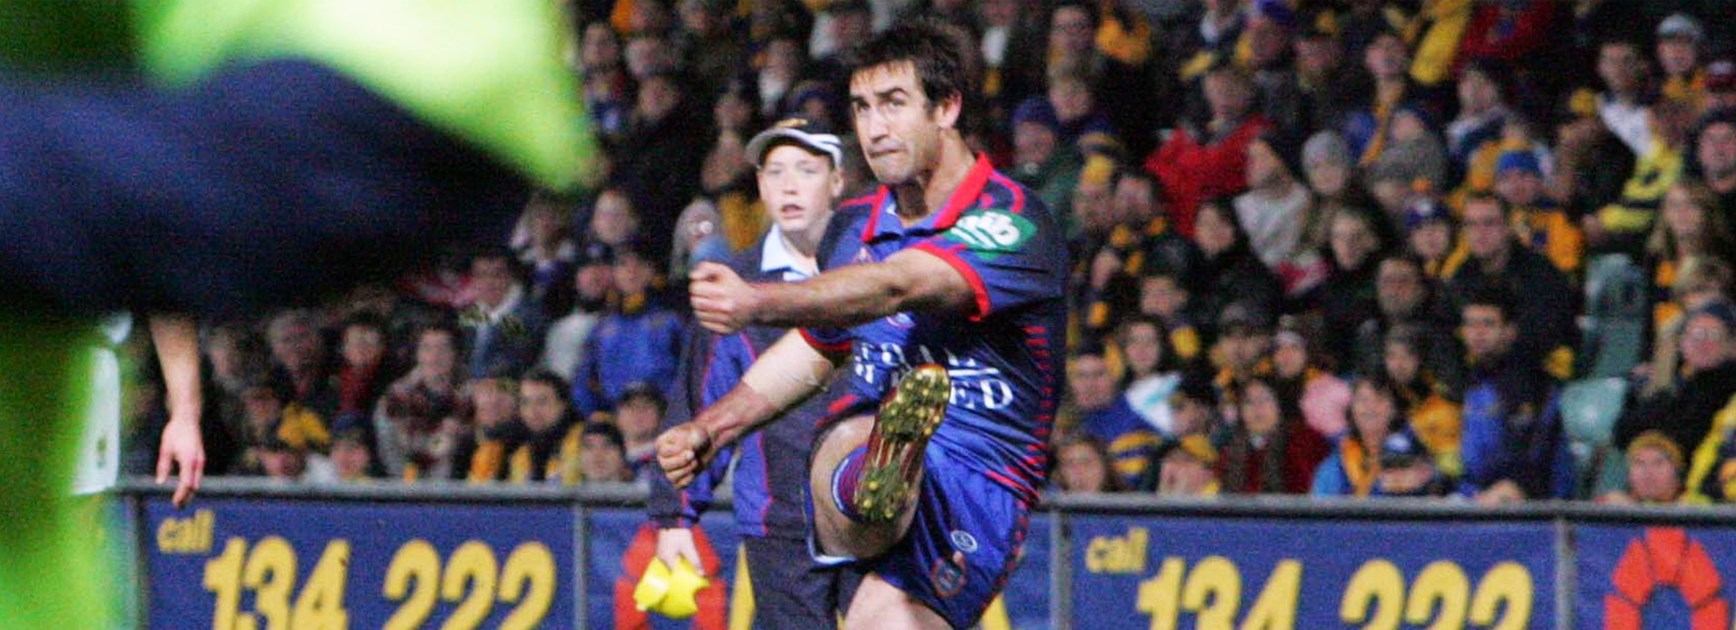 Andrew Johns will be back kicking goals - for charity - during the 2016 Downer NRL Auckland Nines weekend.